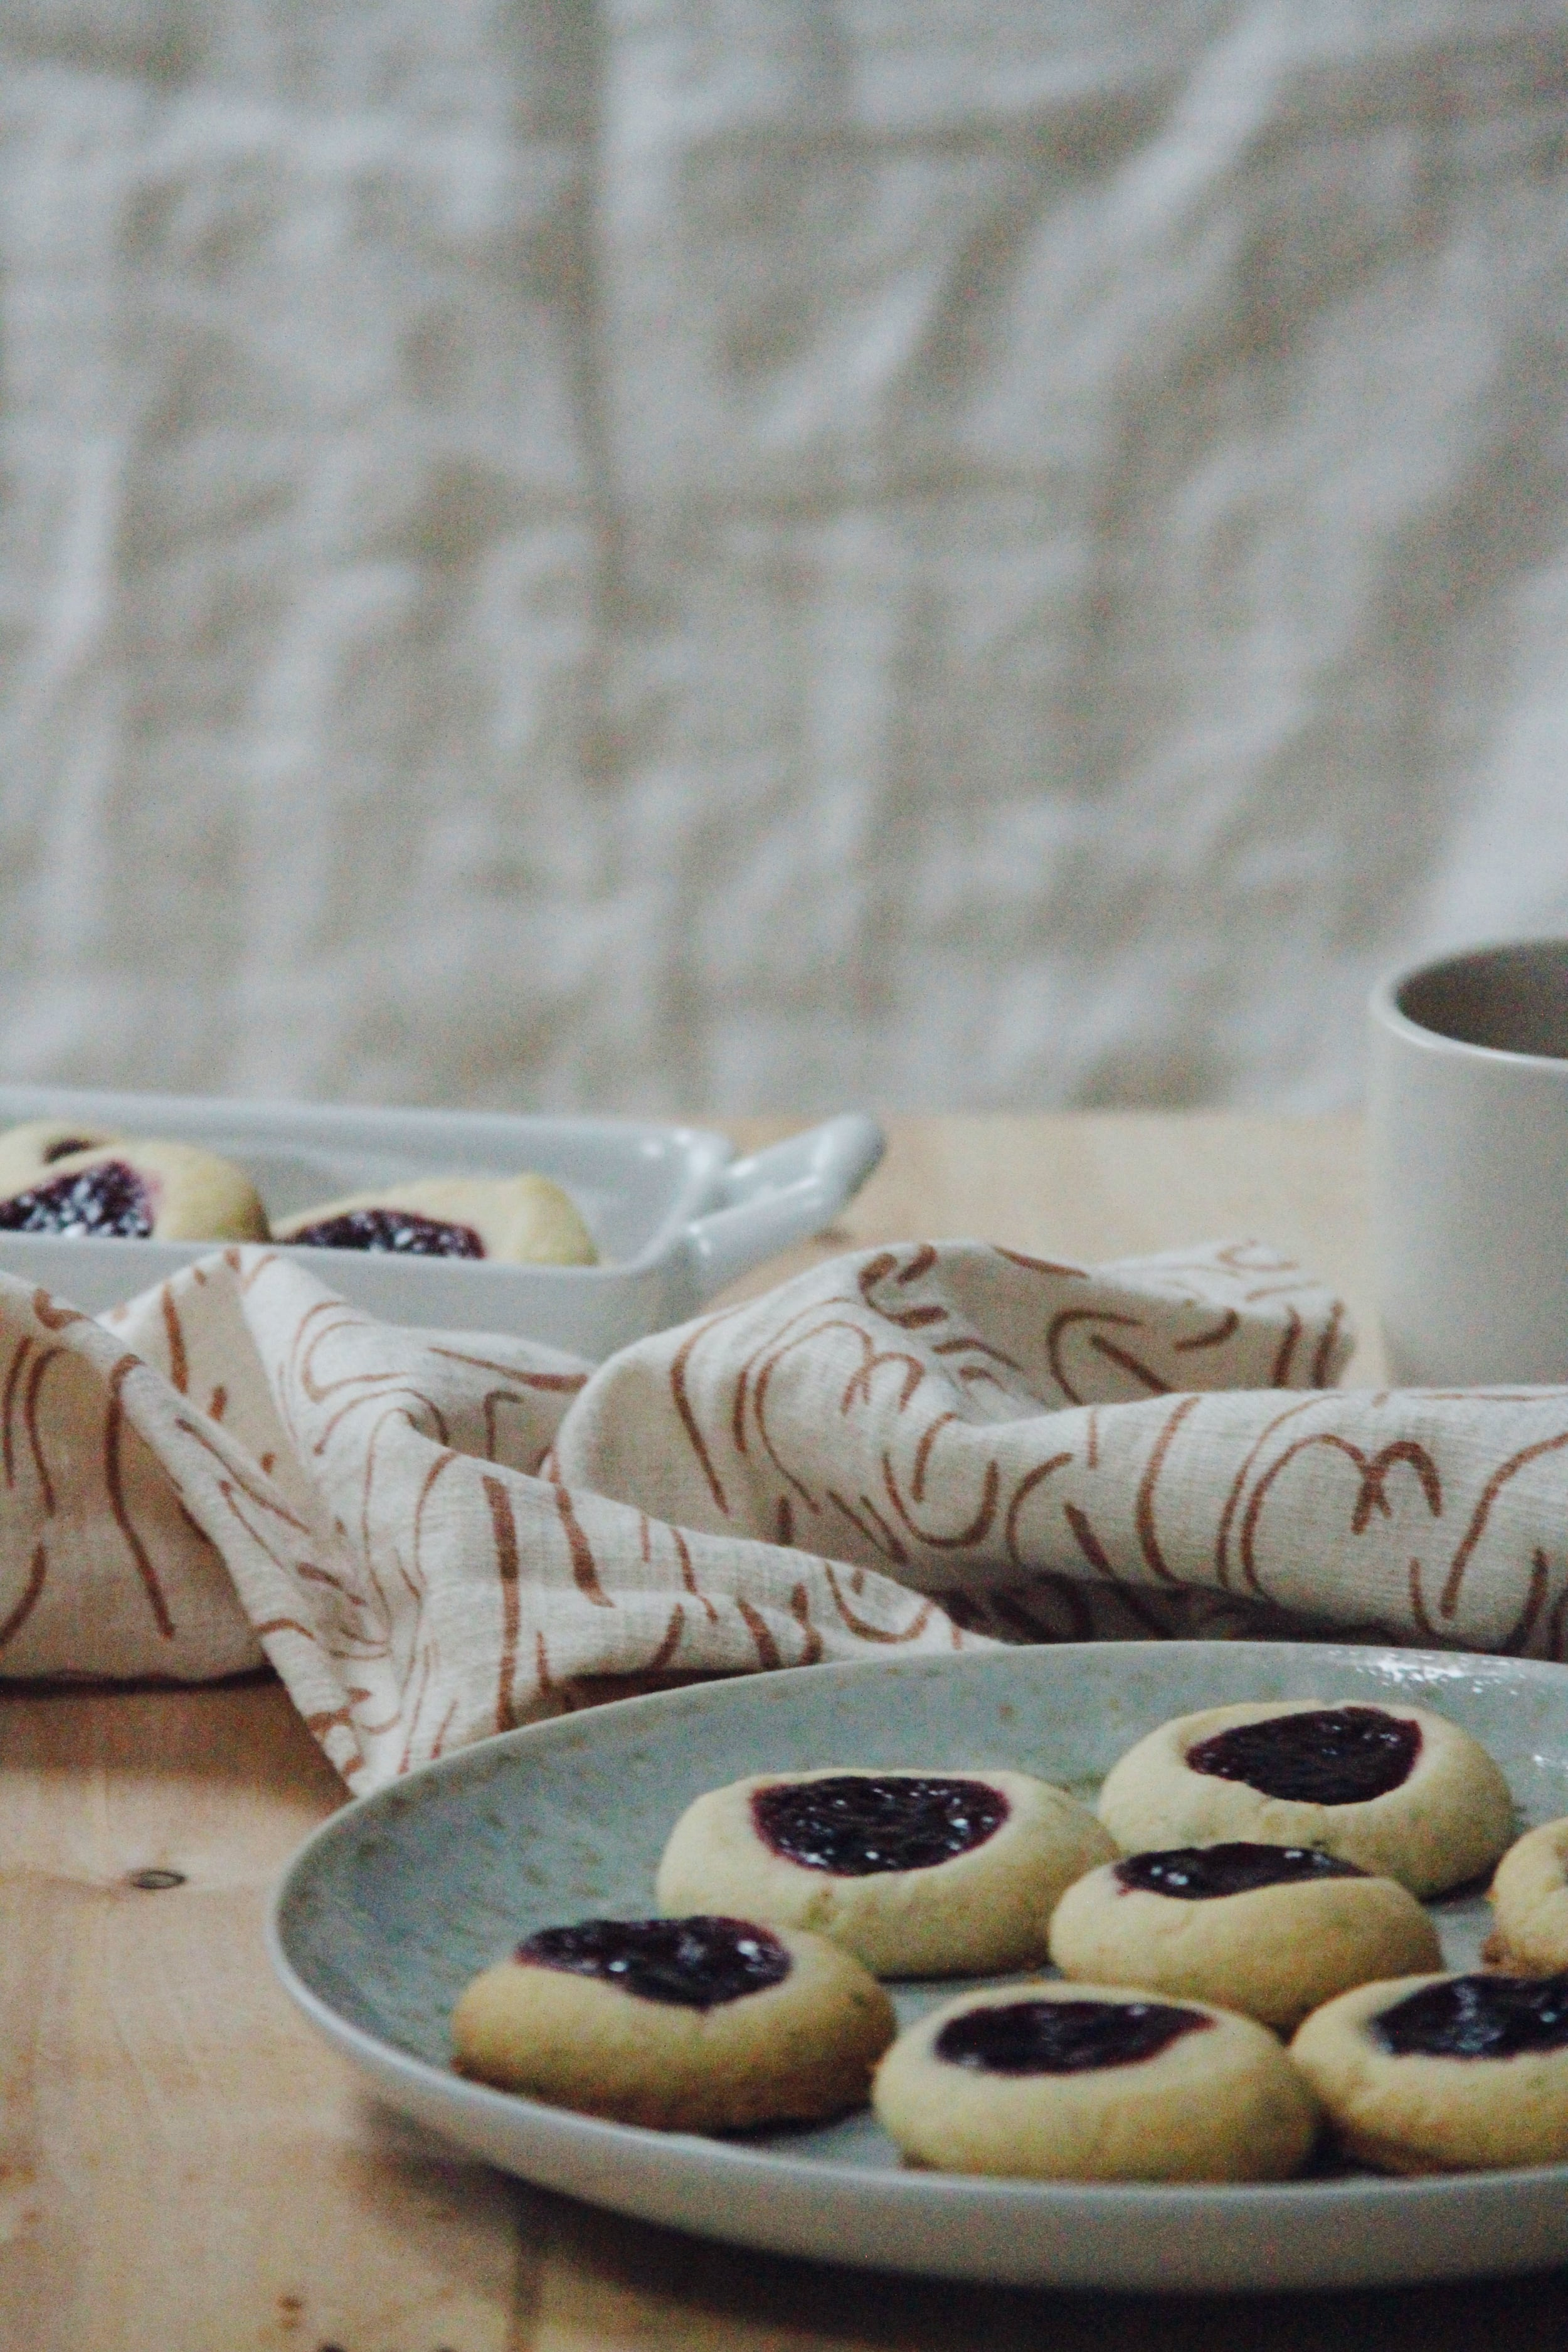 jammy cookies // a little gathering